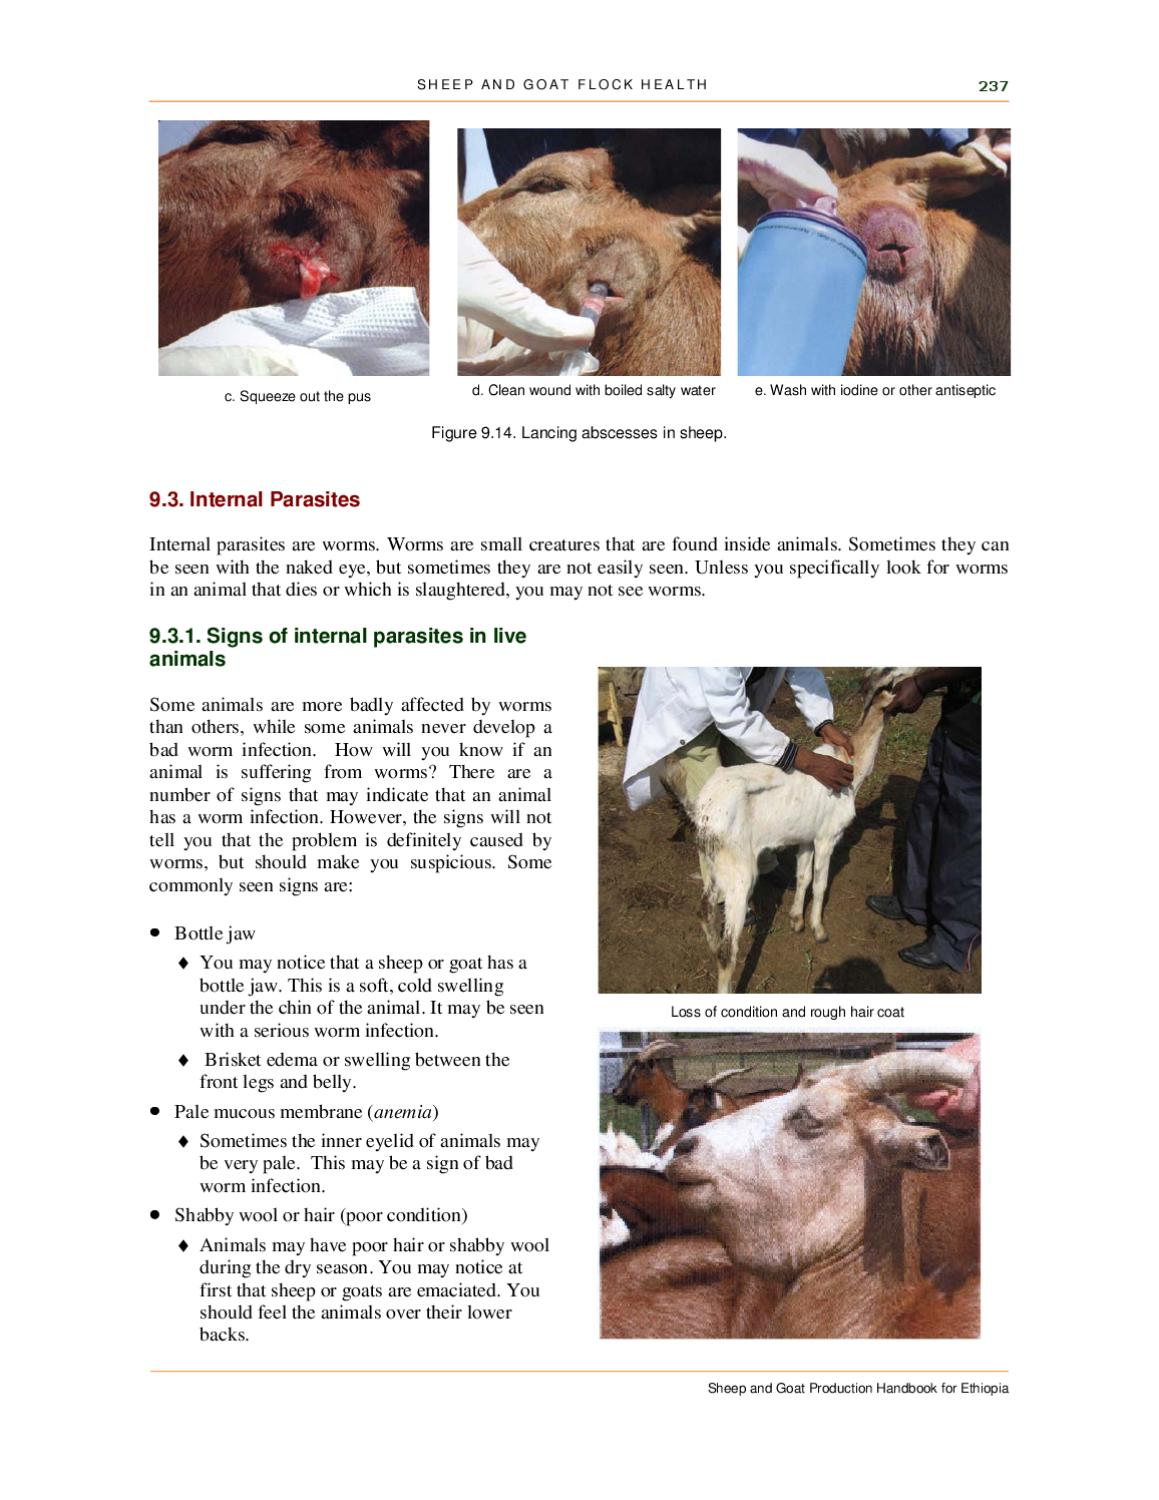 Sheep and Goat Production Handbook for Ethiopia - complete